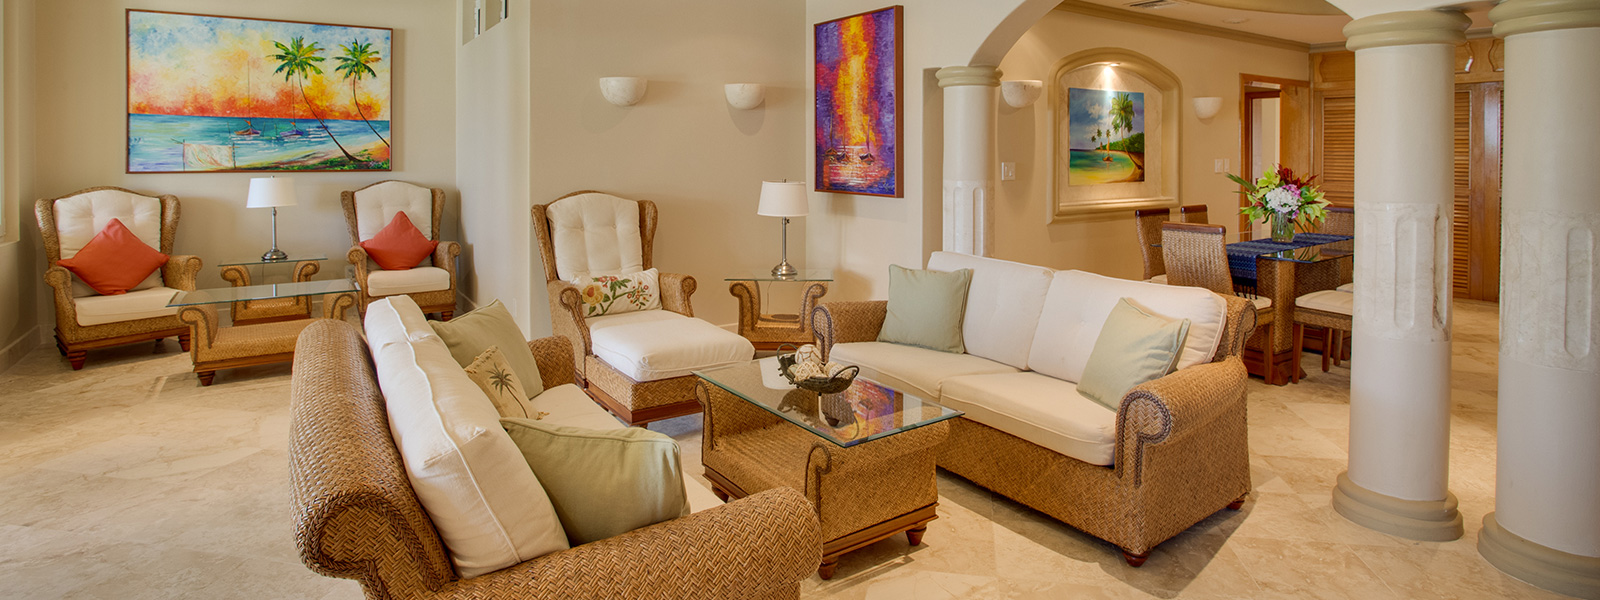 Belize Vacation Rentals Villa Paraiso Living Room